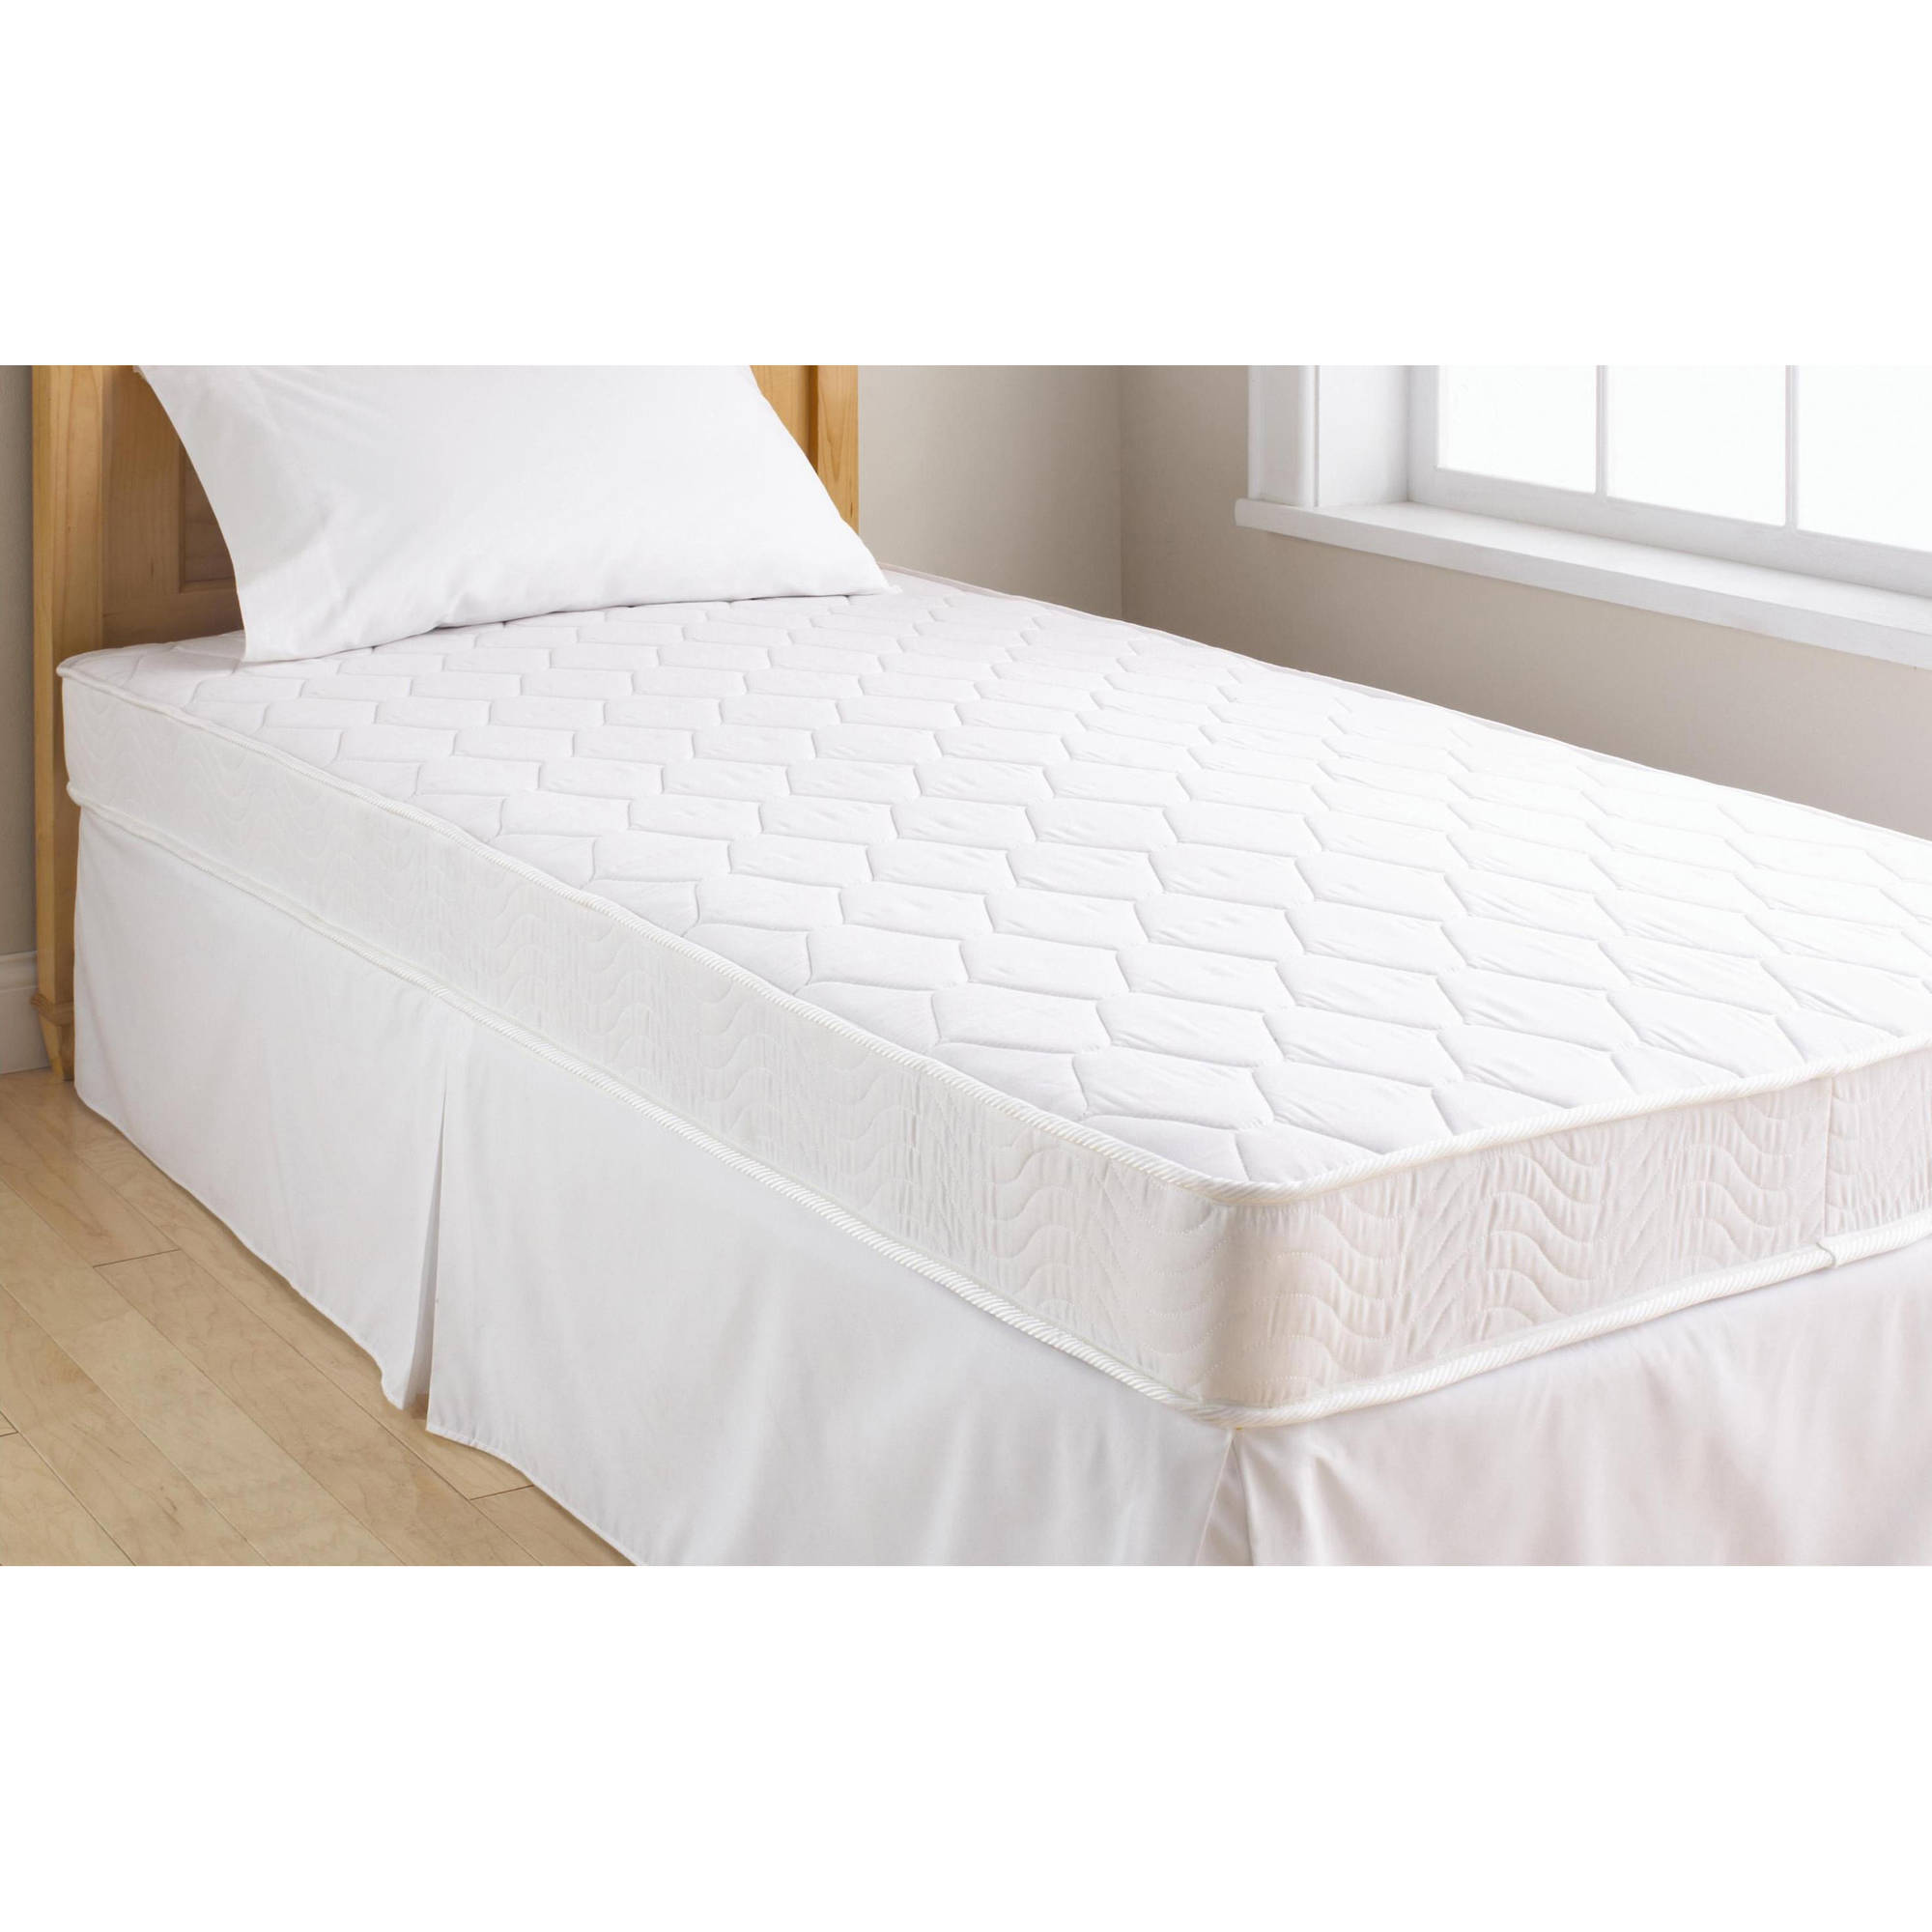 Mainstays 6 Inch Inner Spring Coil Mattress, Multiple Sizes